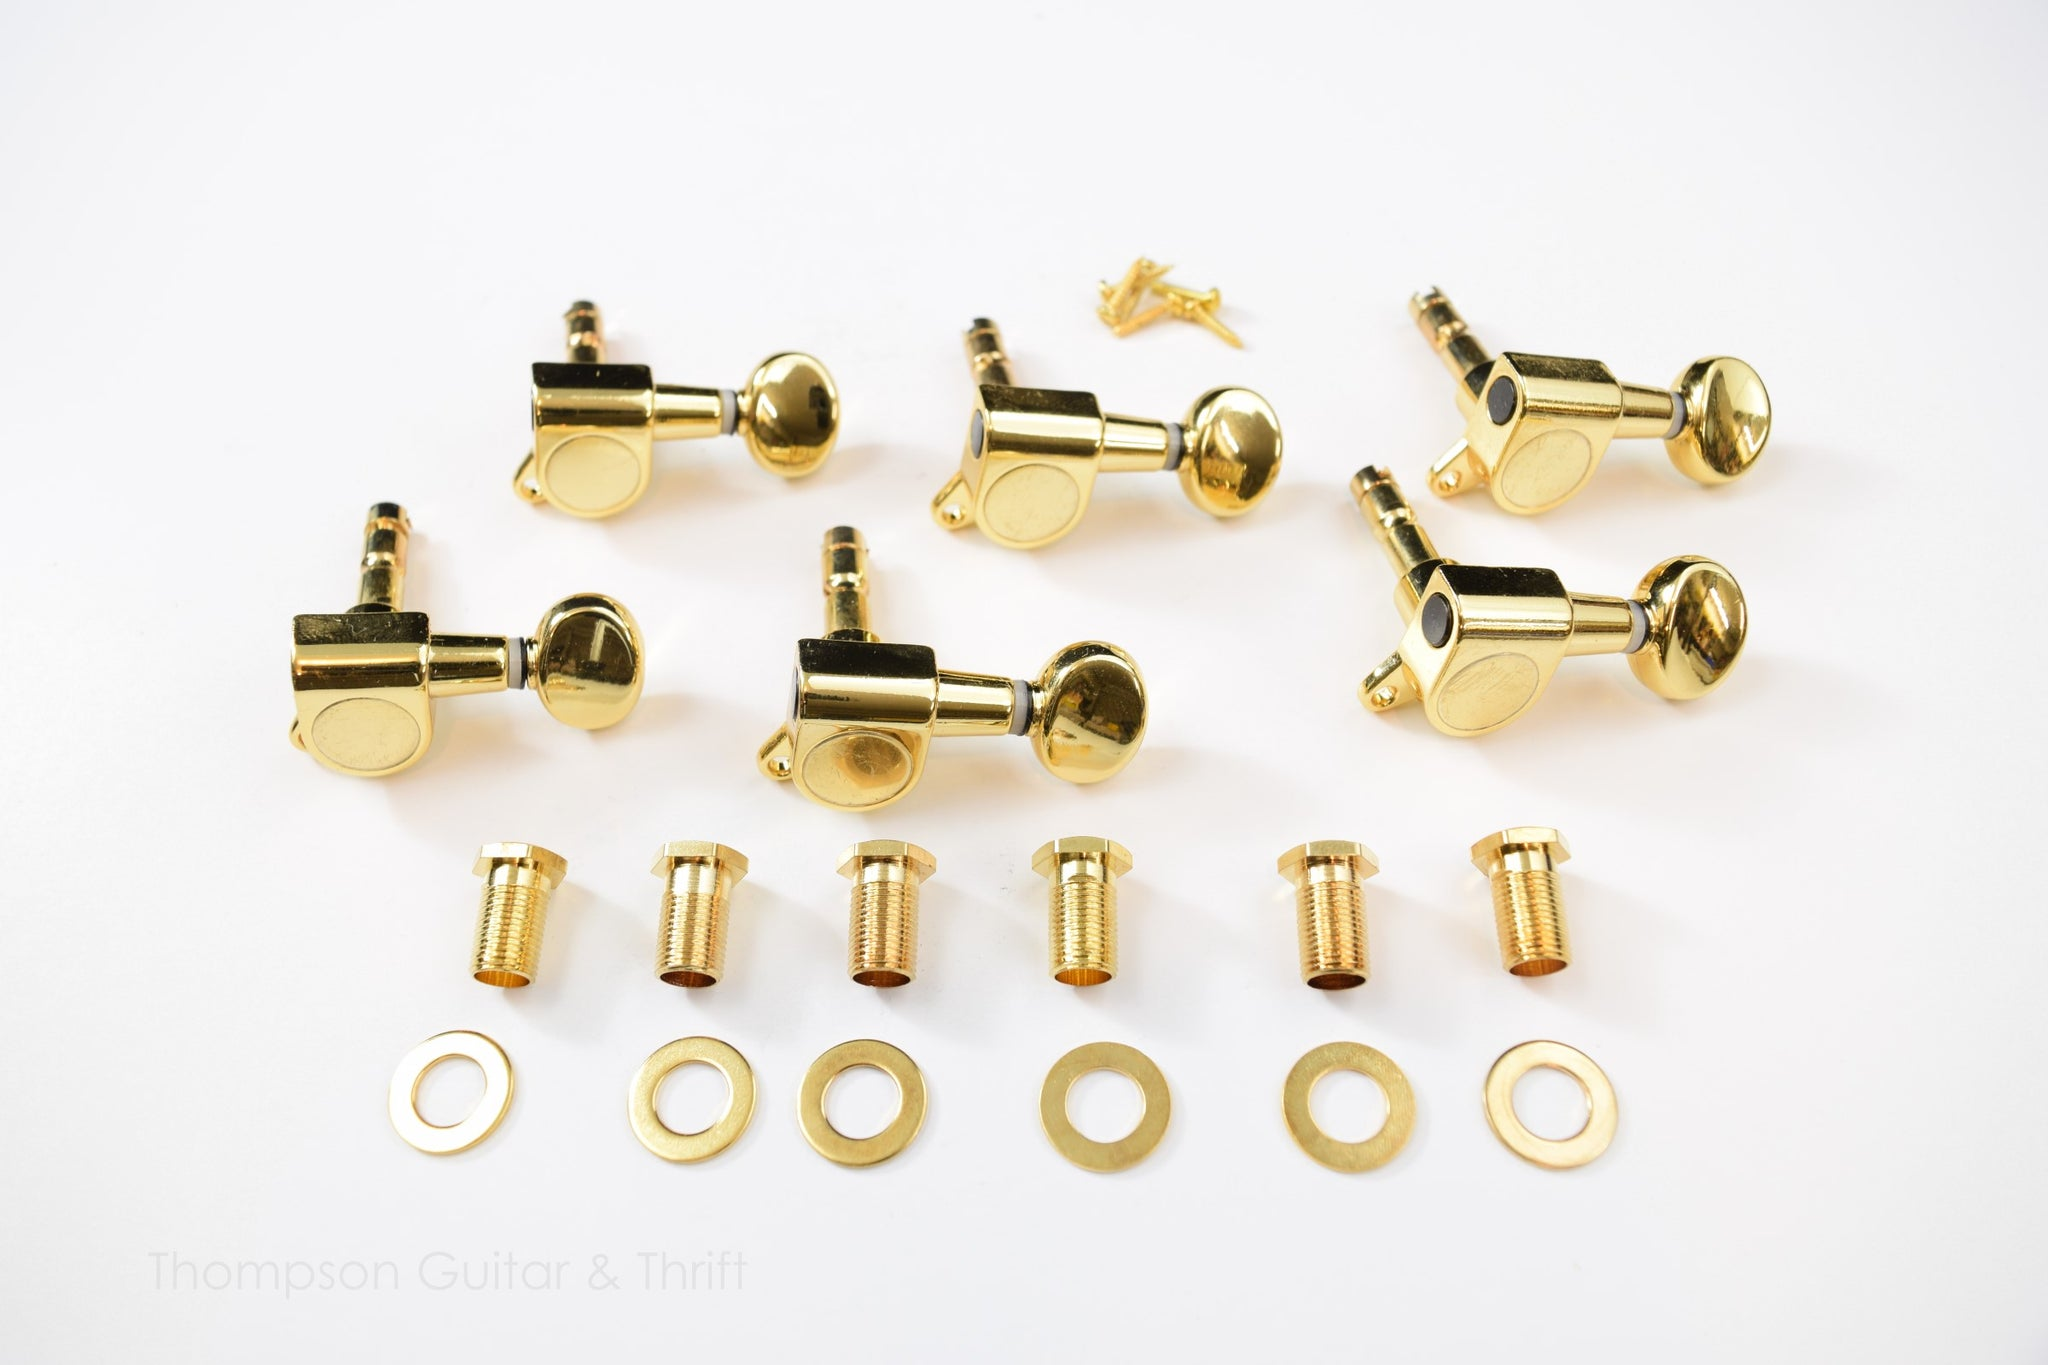 6 in line Gold Proline Locking Tuners Set of 6